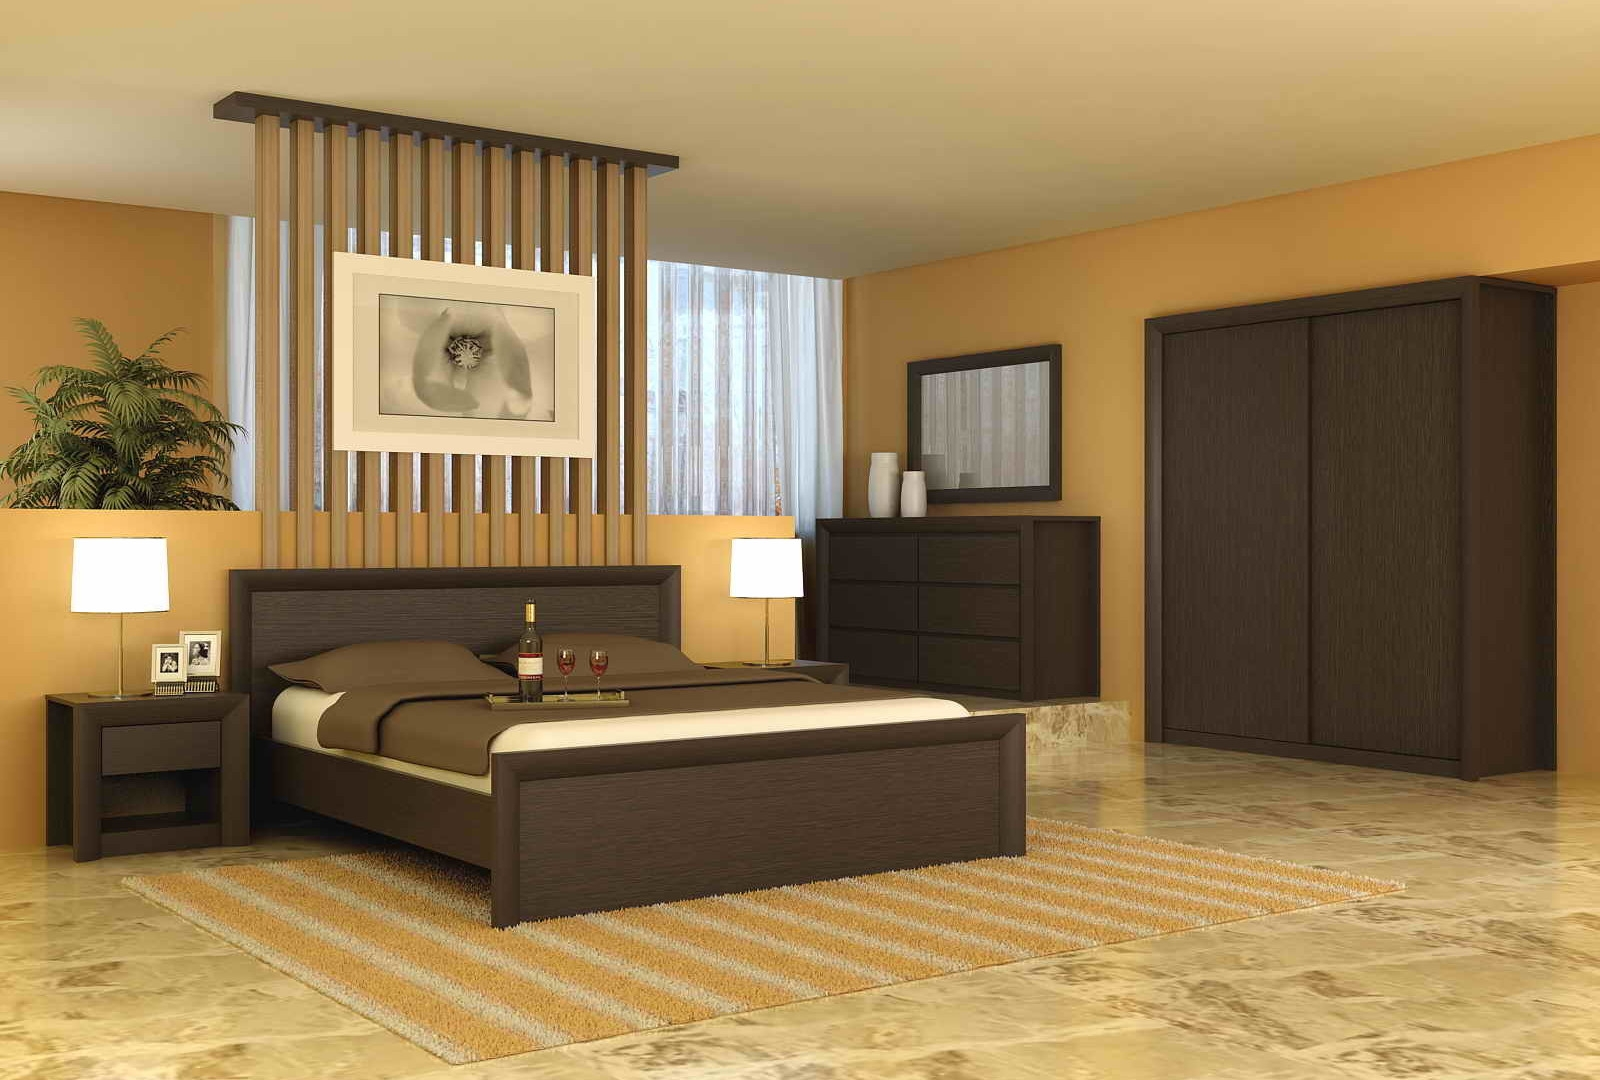 Amazing Bedroom Design Ideas For Small Bedrooms Archives Home Design Throughout Interior Design Of Bedroom Furniture